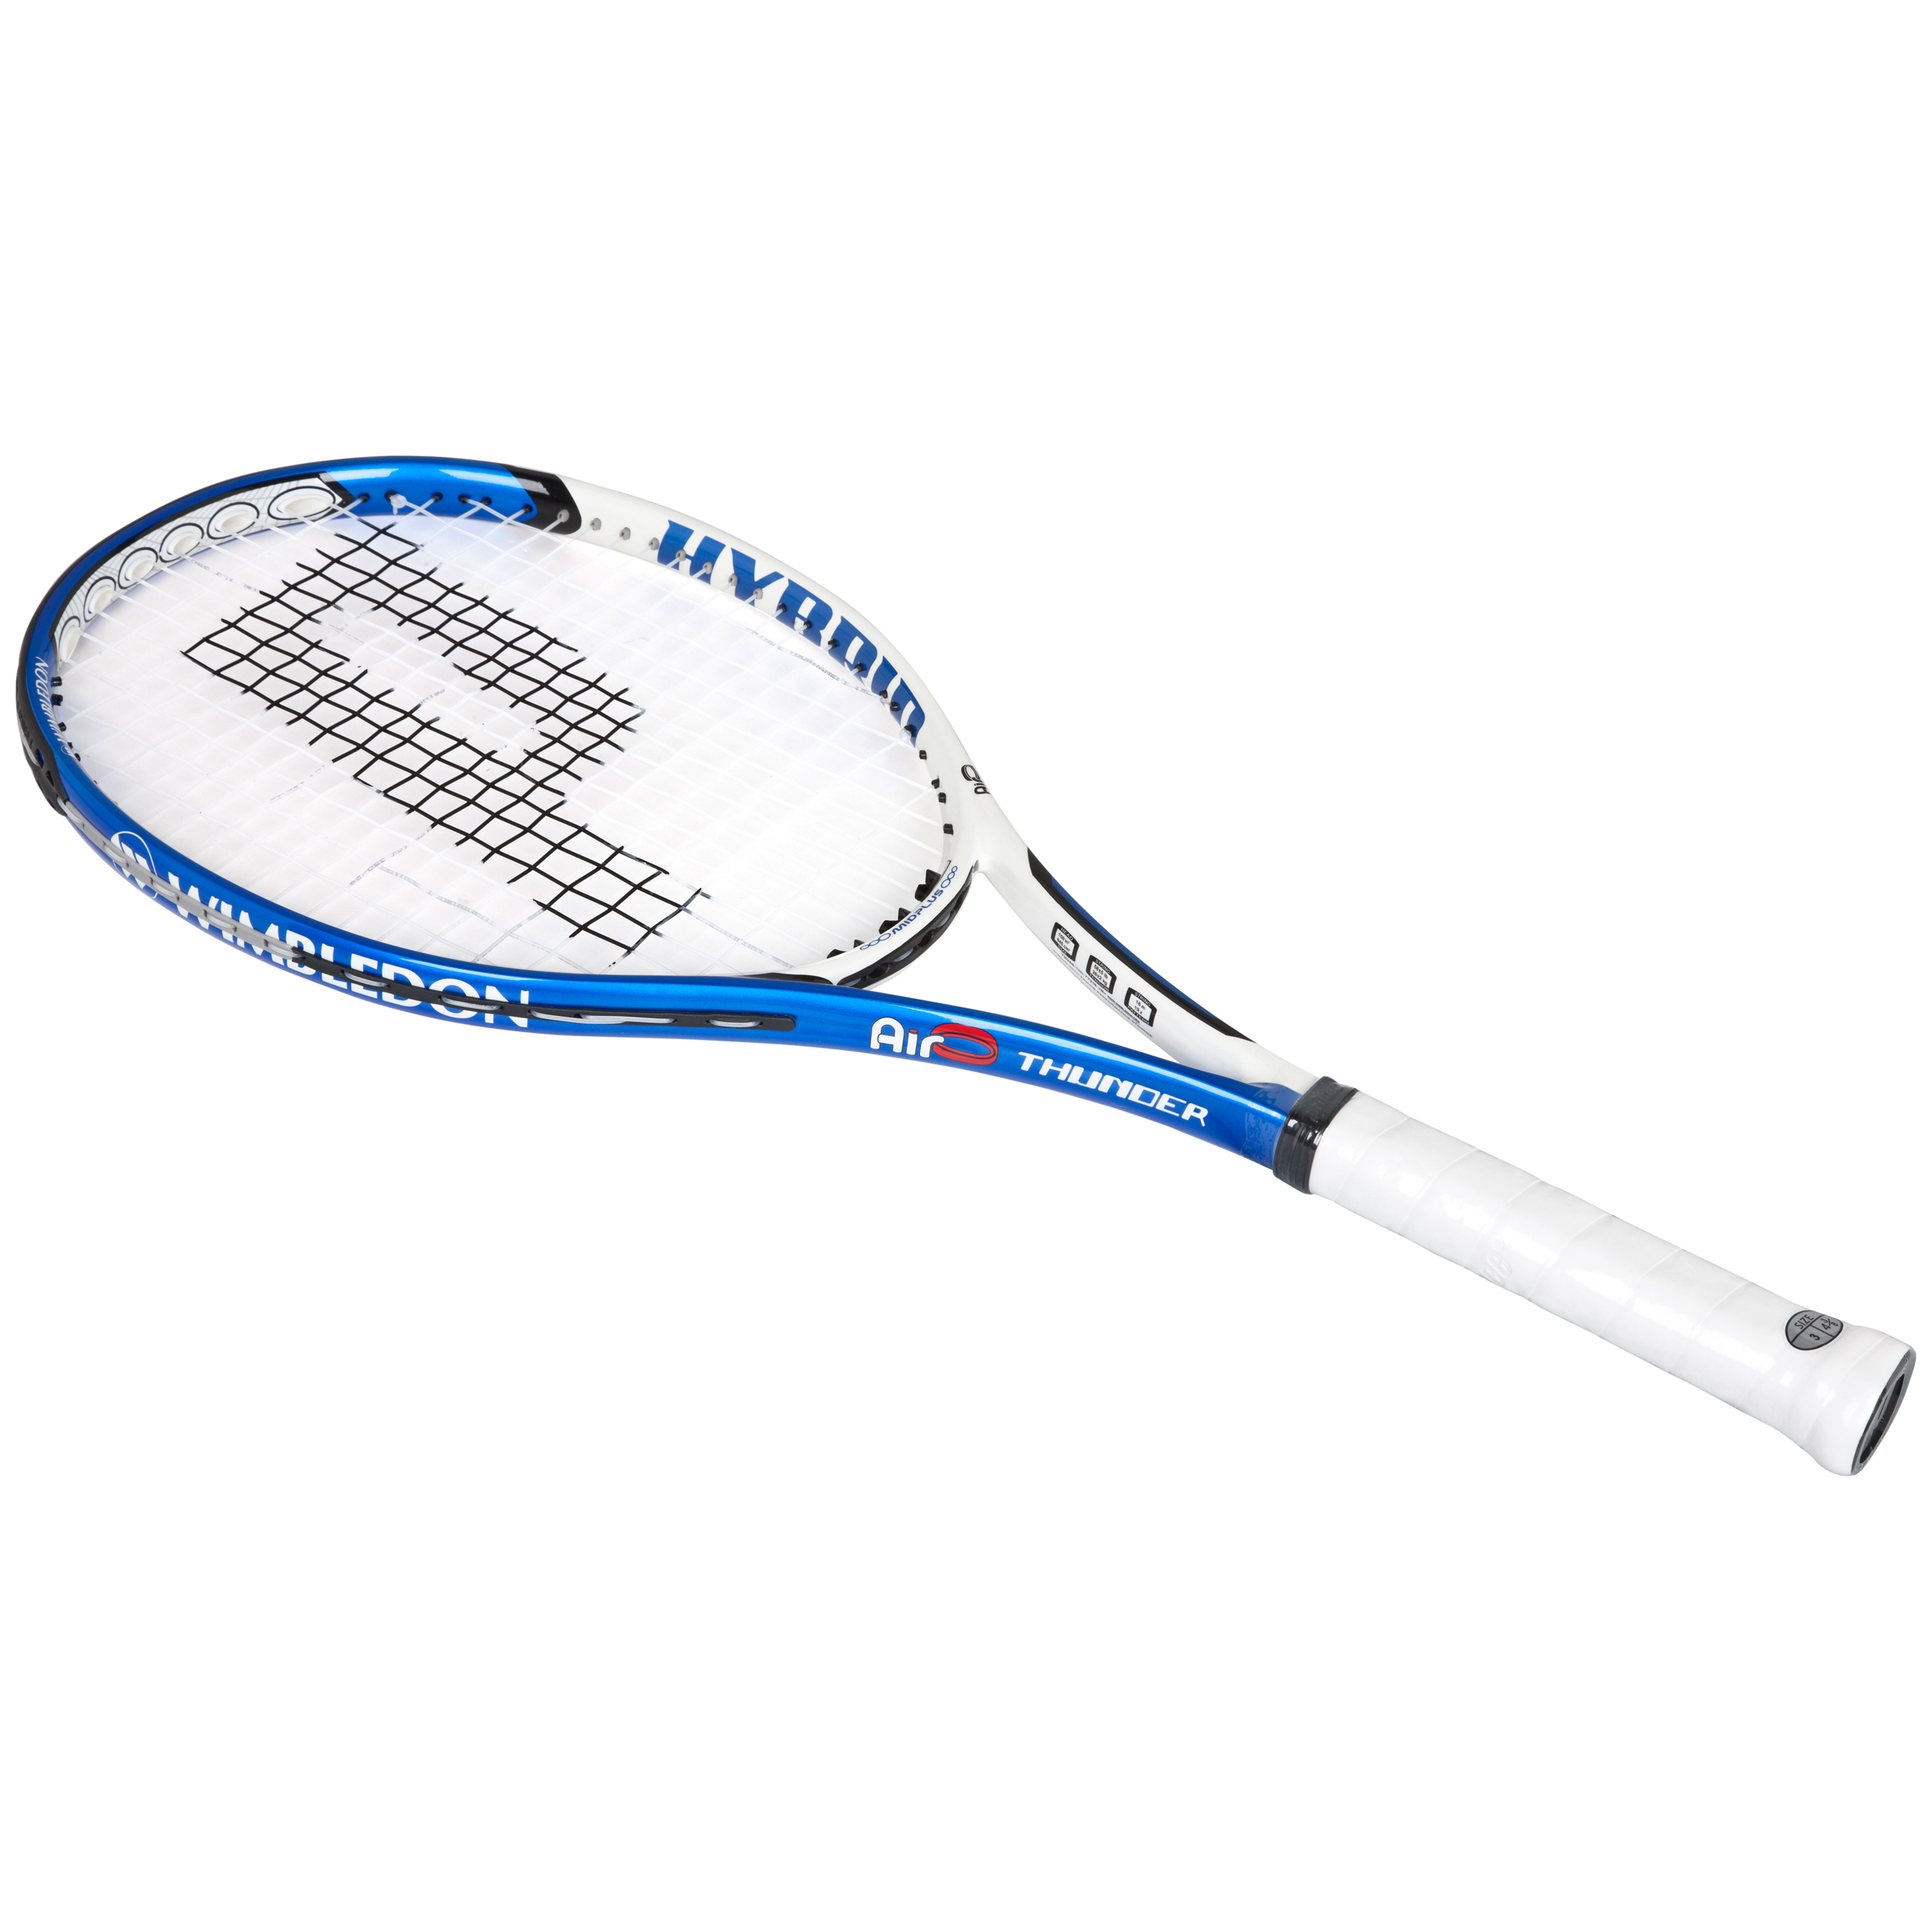 Wimbledon By Prince Airo Hybrid Thunder Tennis Racket - Blue/White